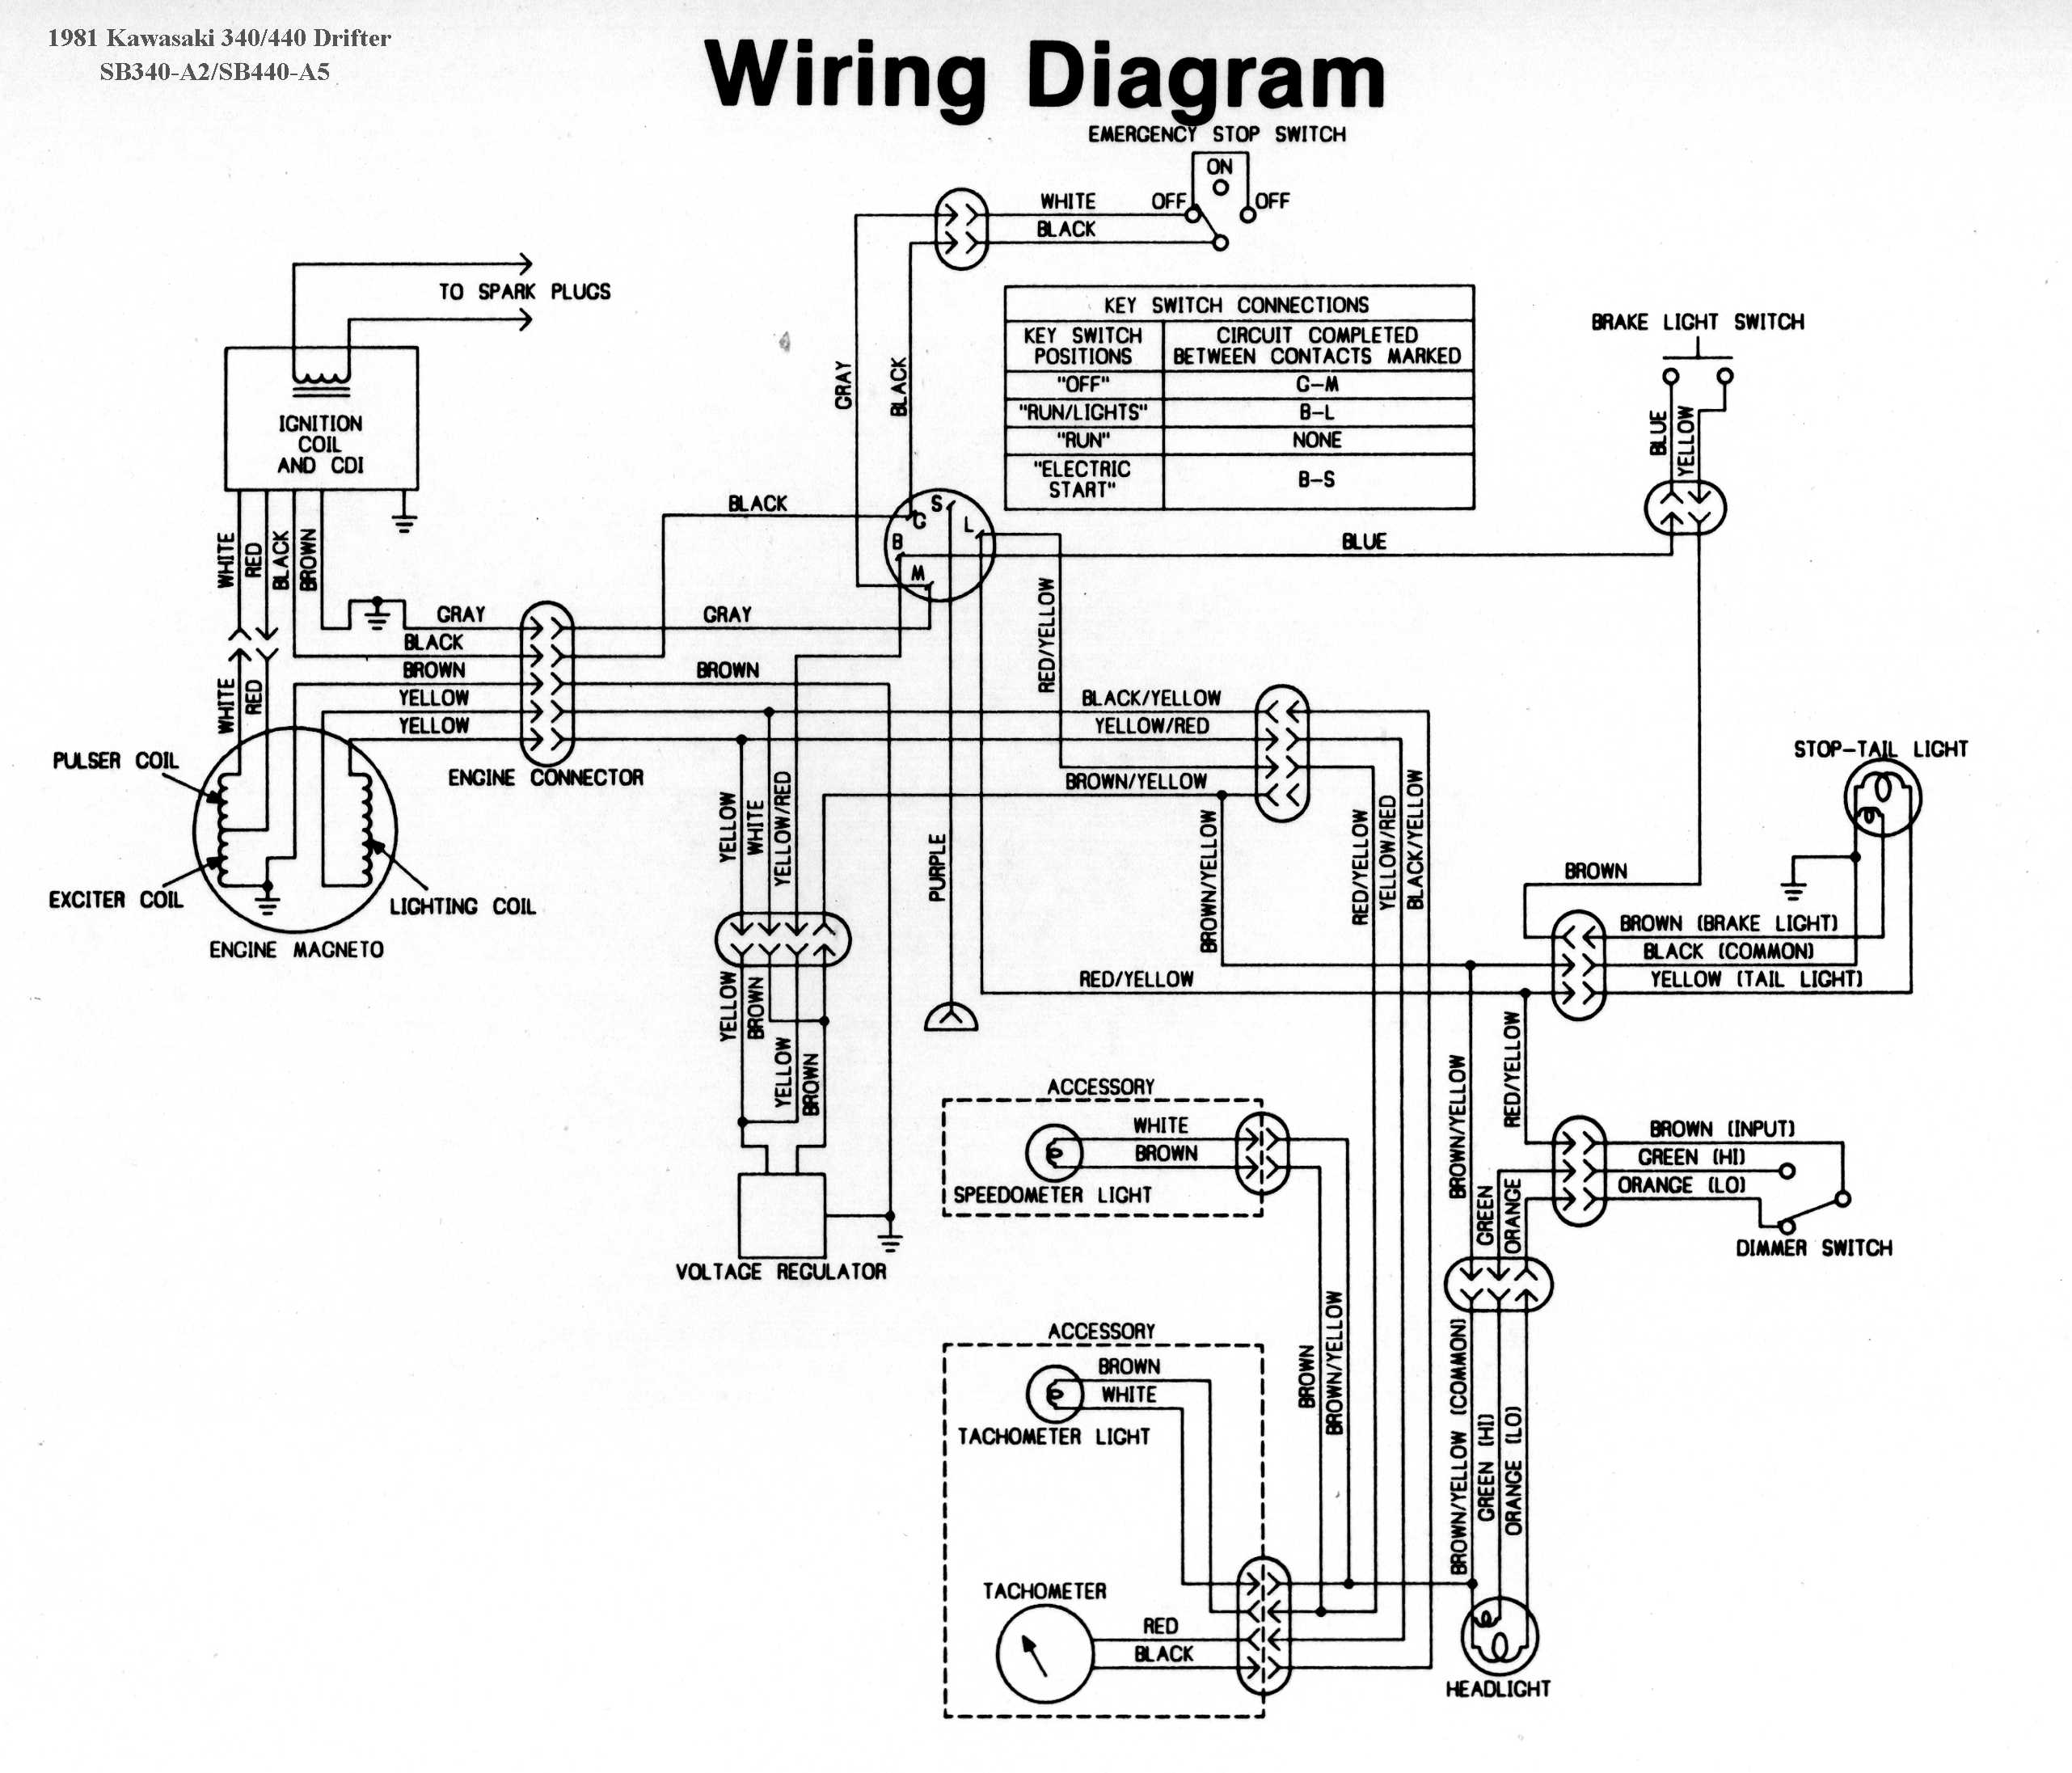 8B994F6 Kawasaki Kz750 Ltd Wiring Diagram Free Download ... on trailer motor diagram, trailer connector diagram, truck cap locks diagram, trailer brakes, trailer tires diagram, trailer lights, cable harness diagram, trailer battery diagram, push button starter installation diagram, trailer hitches diagram, trailer parts, circuit diagram, trailer batteries diagram, trailer frame diagram, trailer schematic,